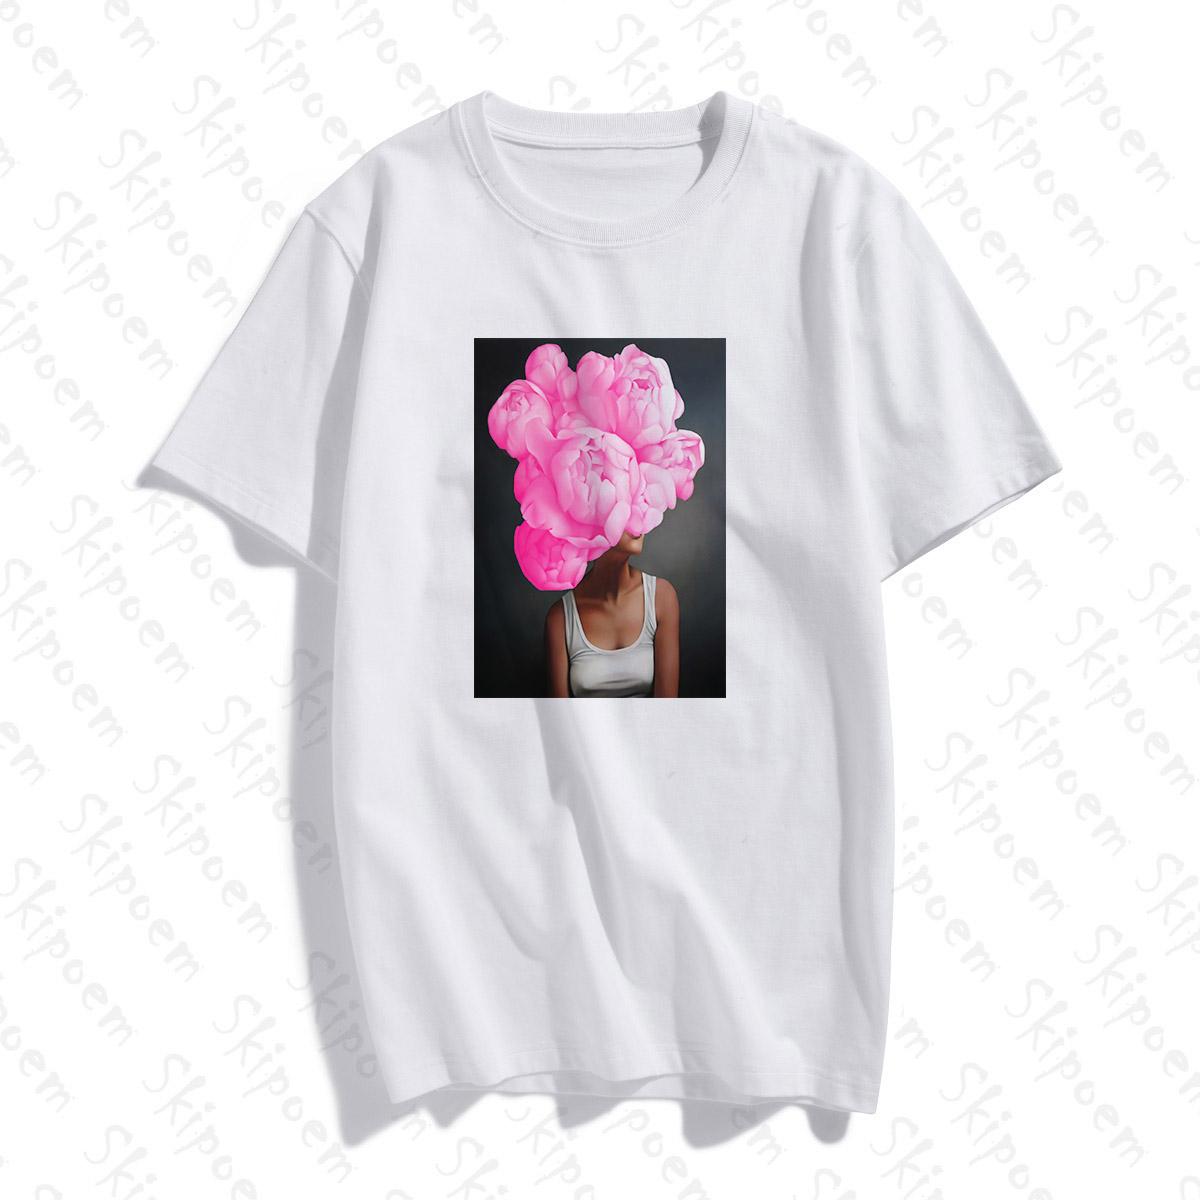 Photography Art Fashion Sexy Woman With Flower T-shirt Women Aesthetic Kawaii Cotton Short Sleeve Plus Size Top Tees Streetwear